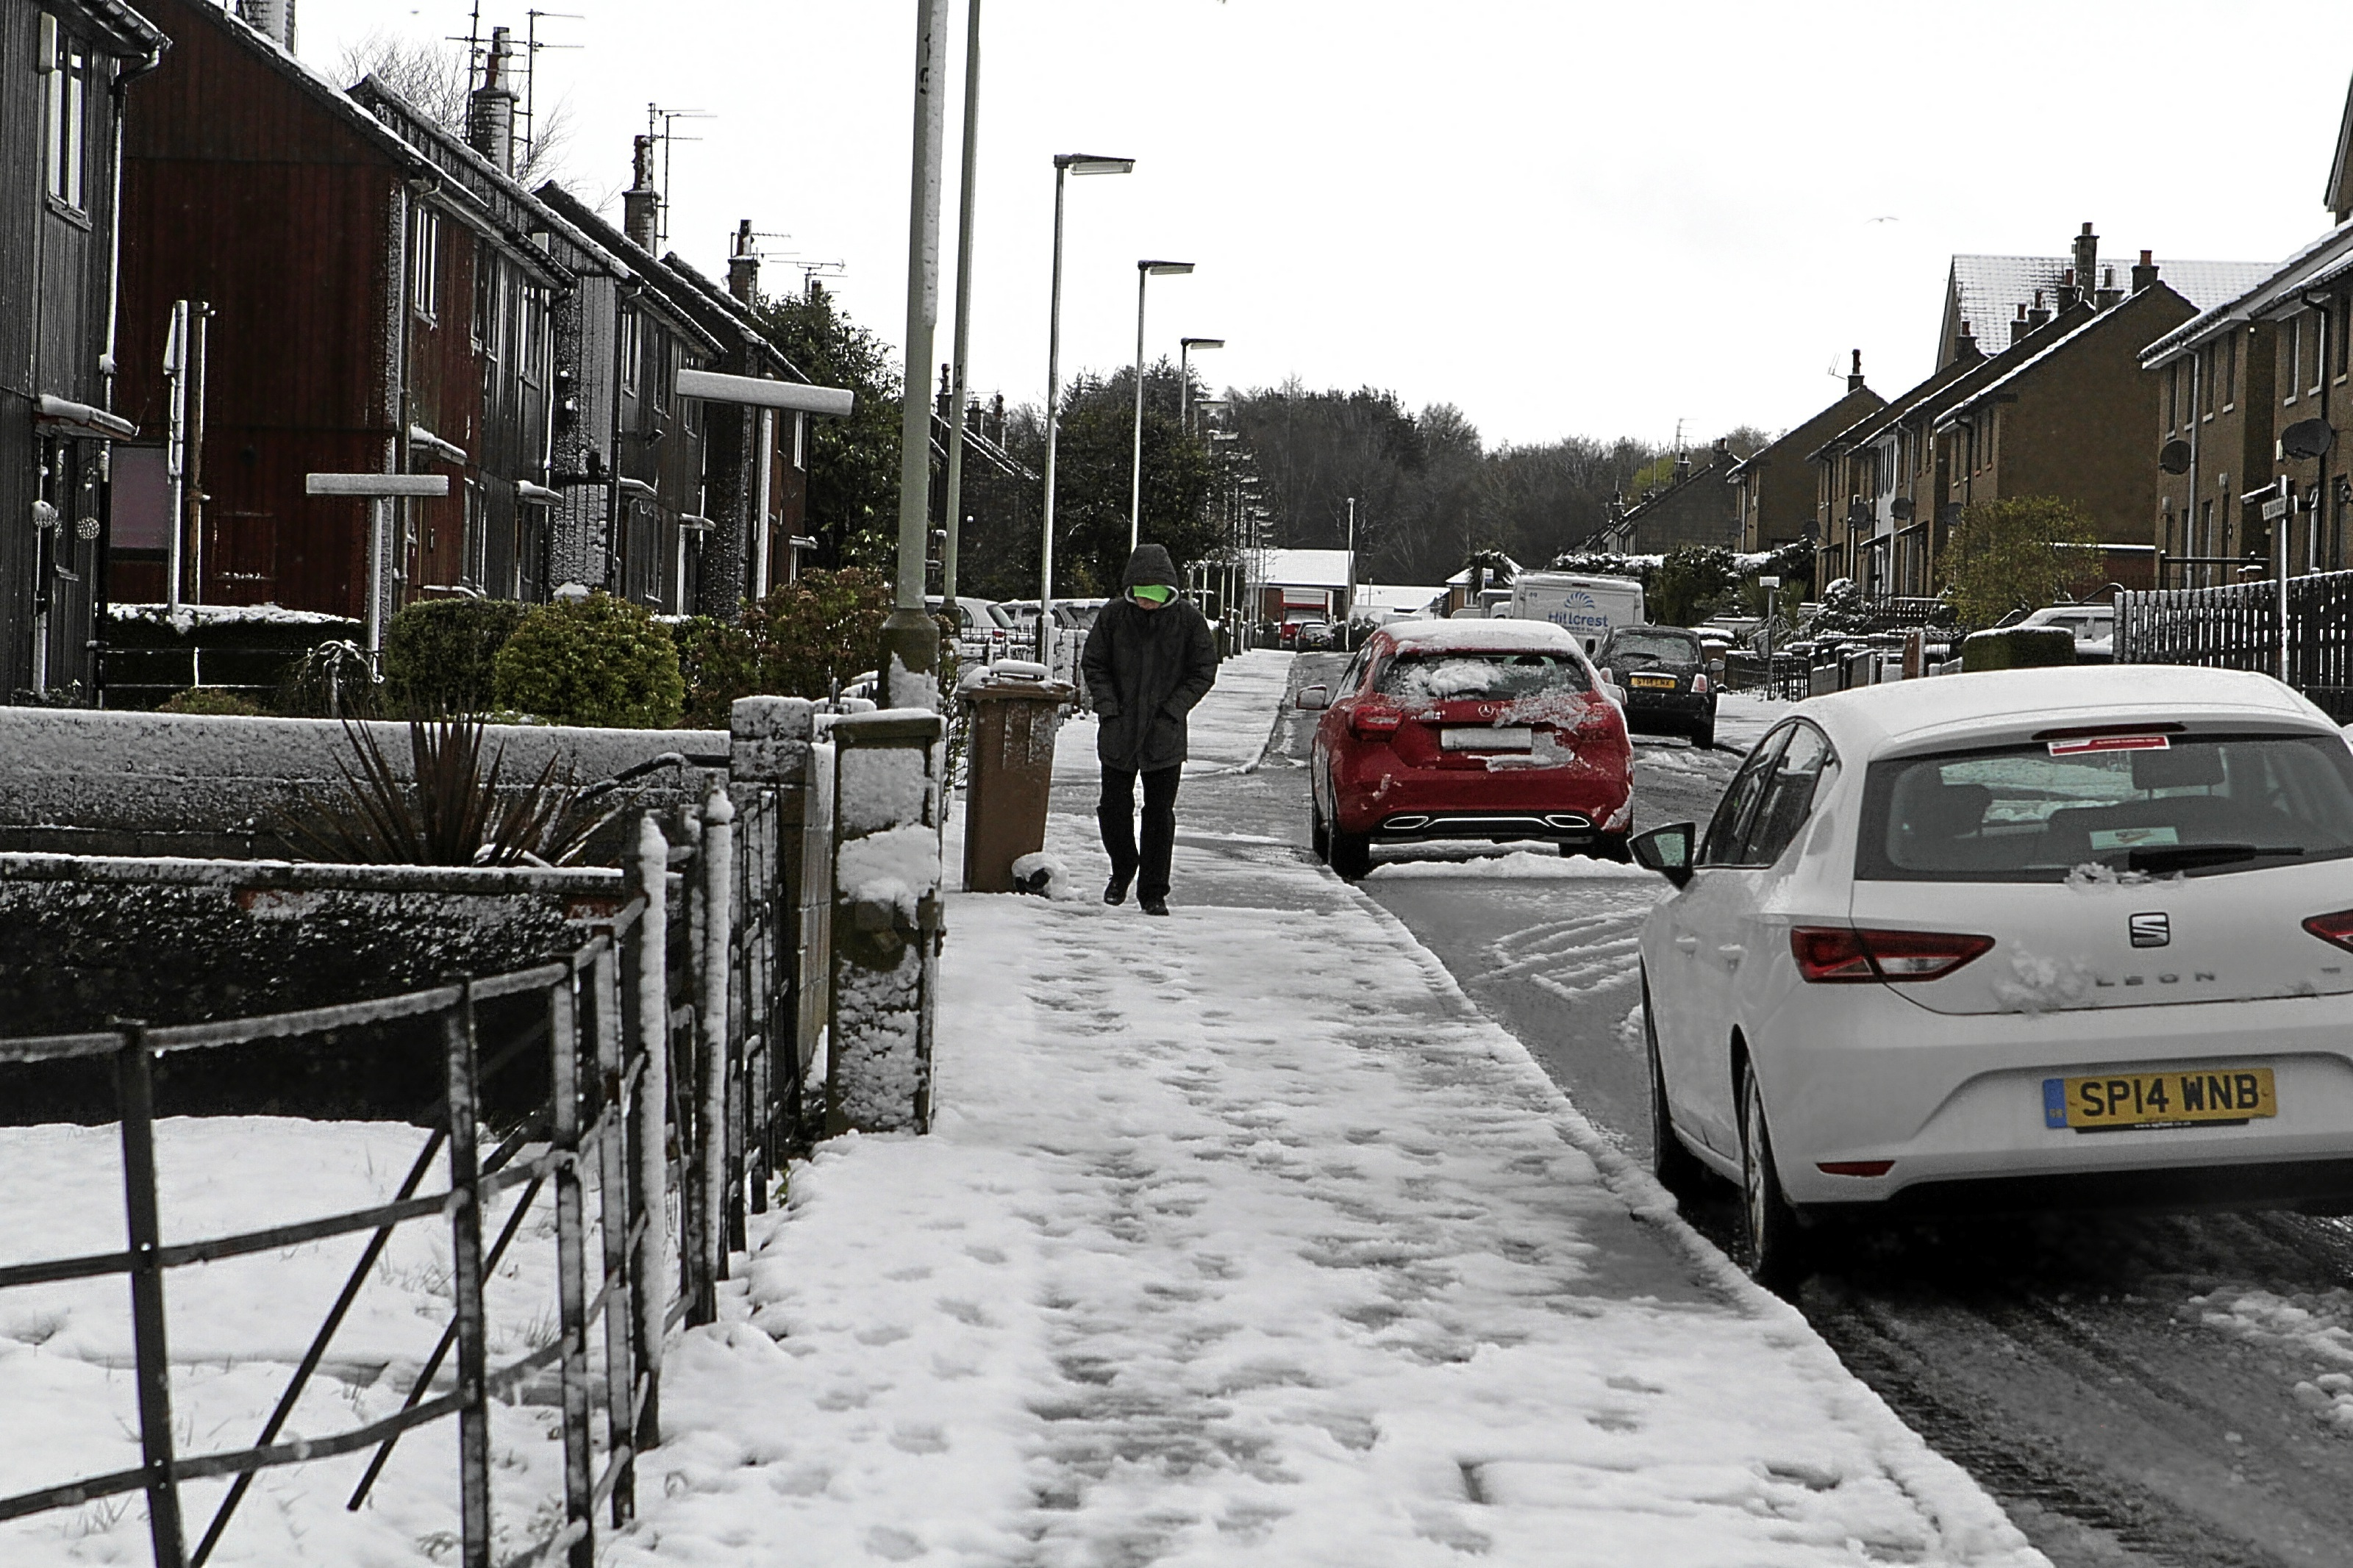 People across Tayside woke to snow this morning